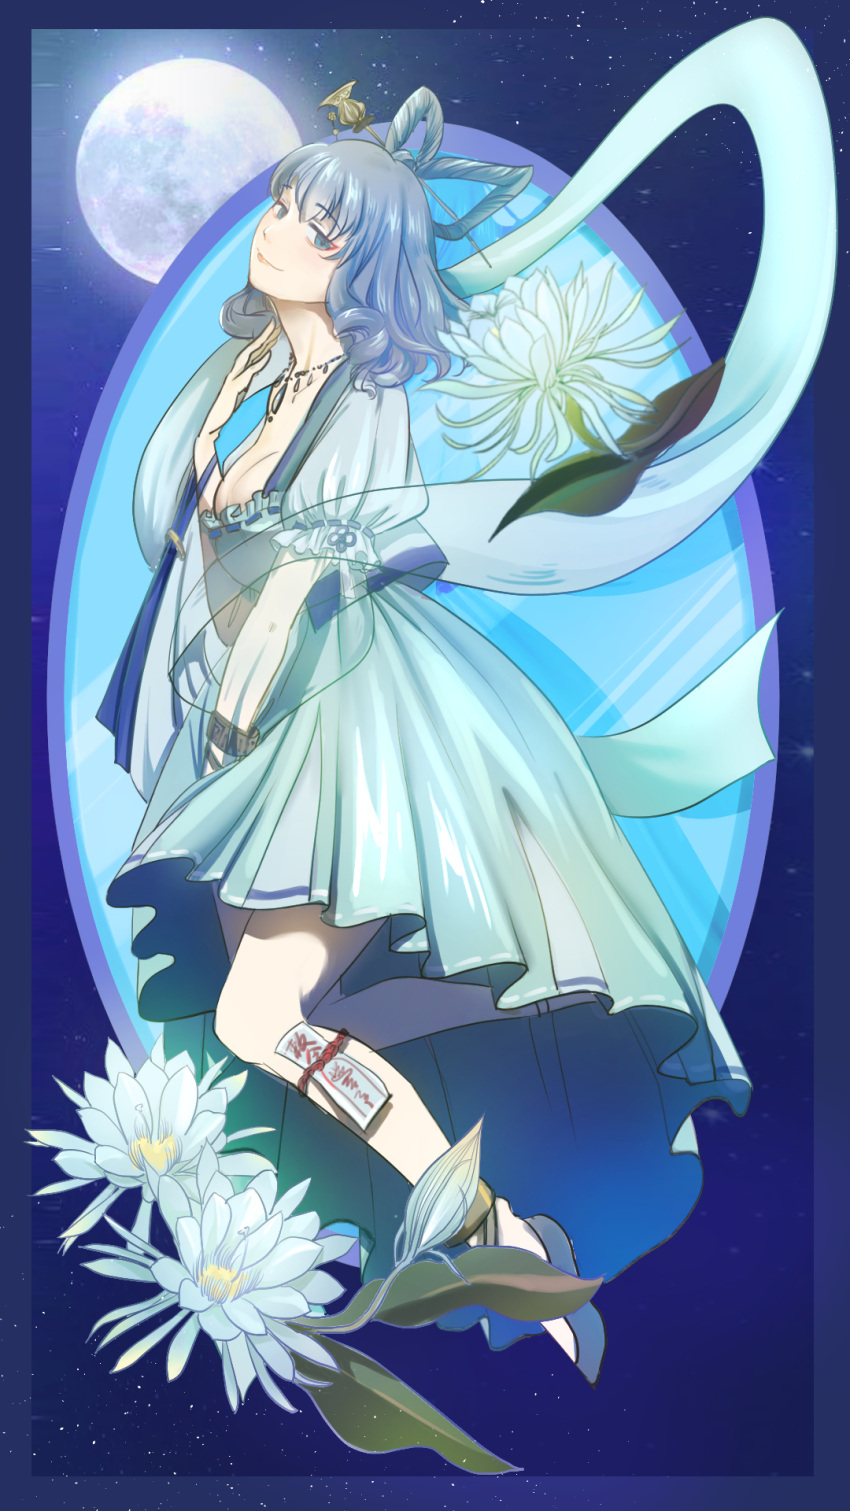 1girl aqua_dress bangs blue_border blue_eyes blue_footwear blue_hair blush border breasts chinese_commentary commentary_request dress eyebrows_visible_through_hair flower full_moon hair_ornament hair_rings hair_stick hand_up highres huliqiu jewelry kaku_seiga looking_at_viewer medium_breasts moon necklace night night_sky ofuda puffy_short_sleeves puffy_sleeves shawl shoes short_hair short_sleeves sky smile solo star_(sky) starry_sky touhou white_flower